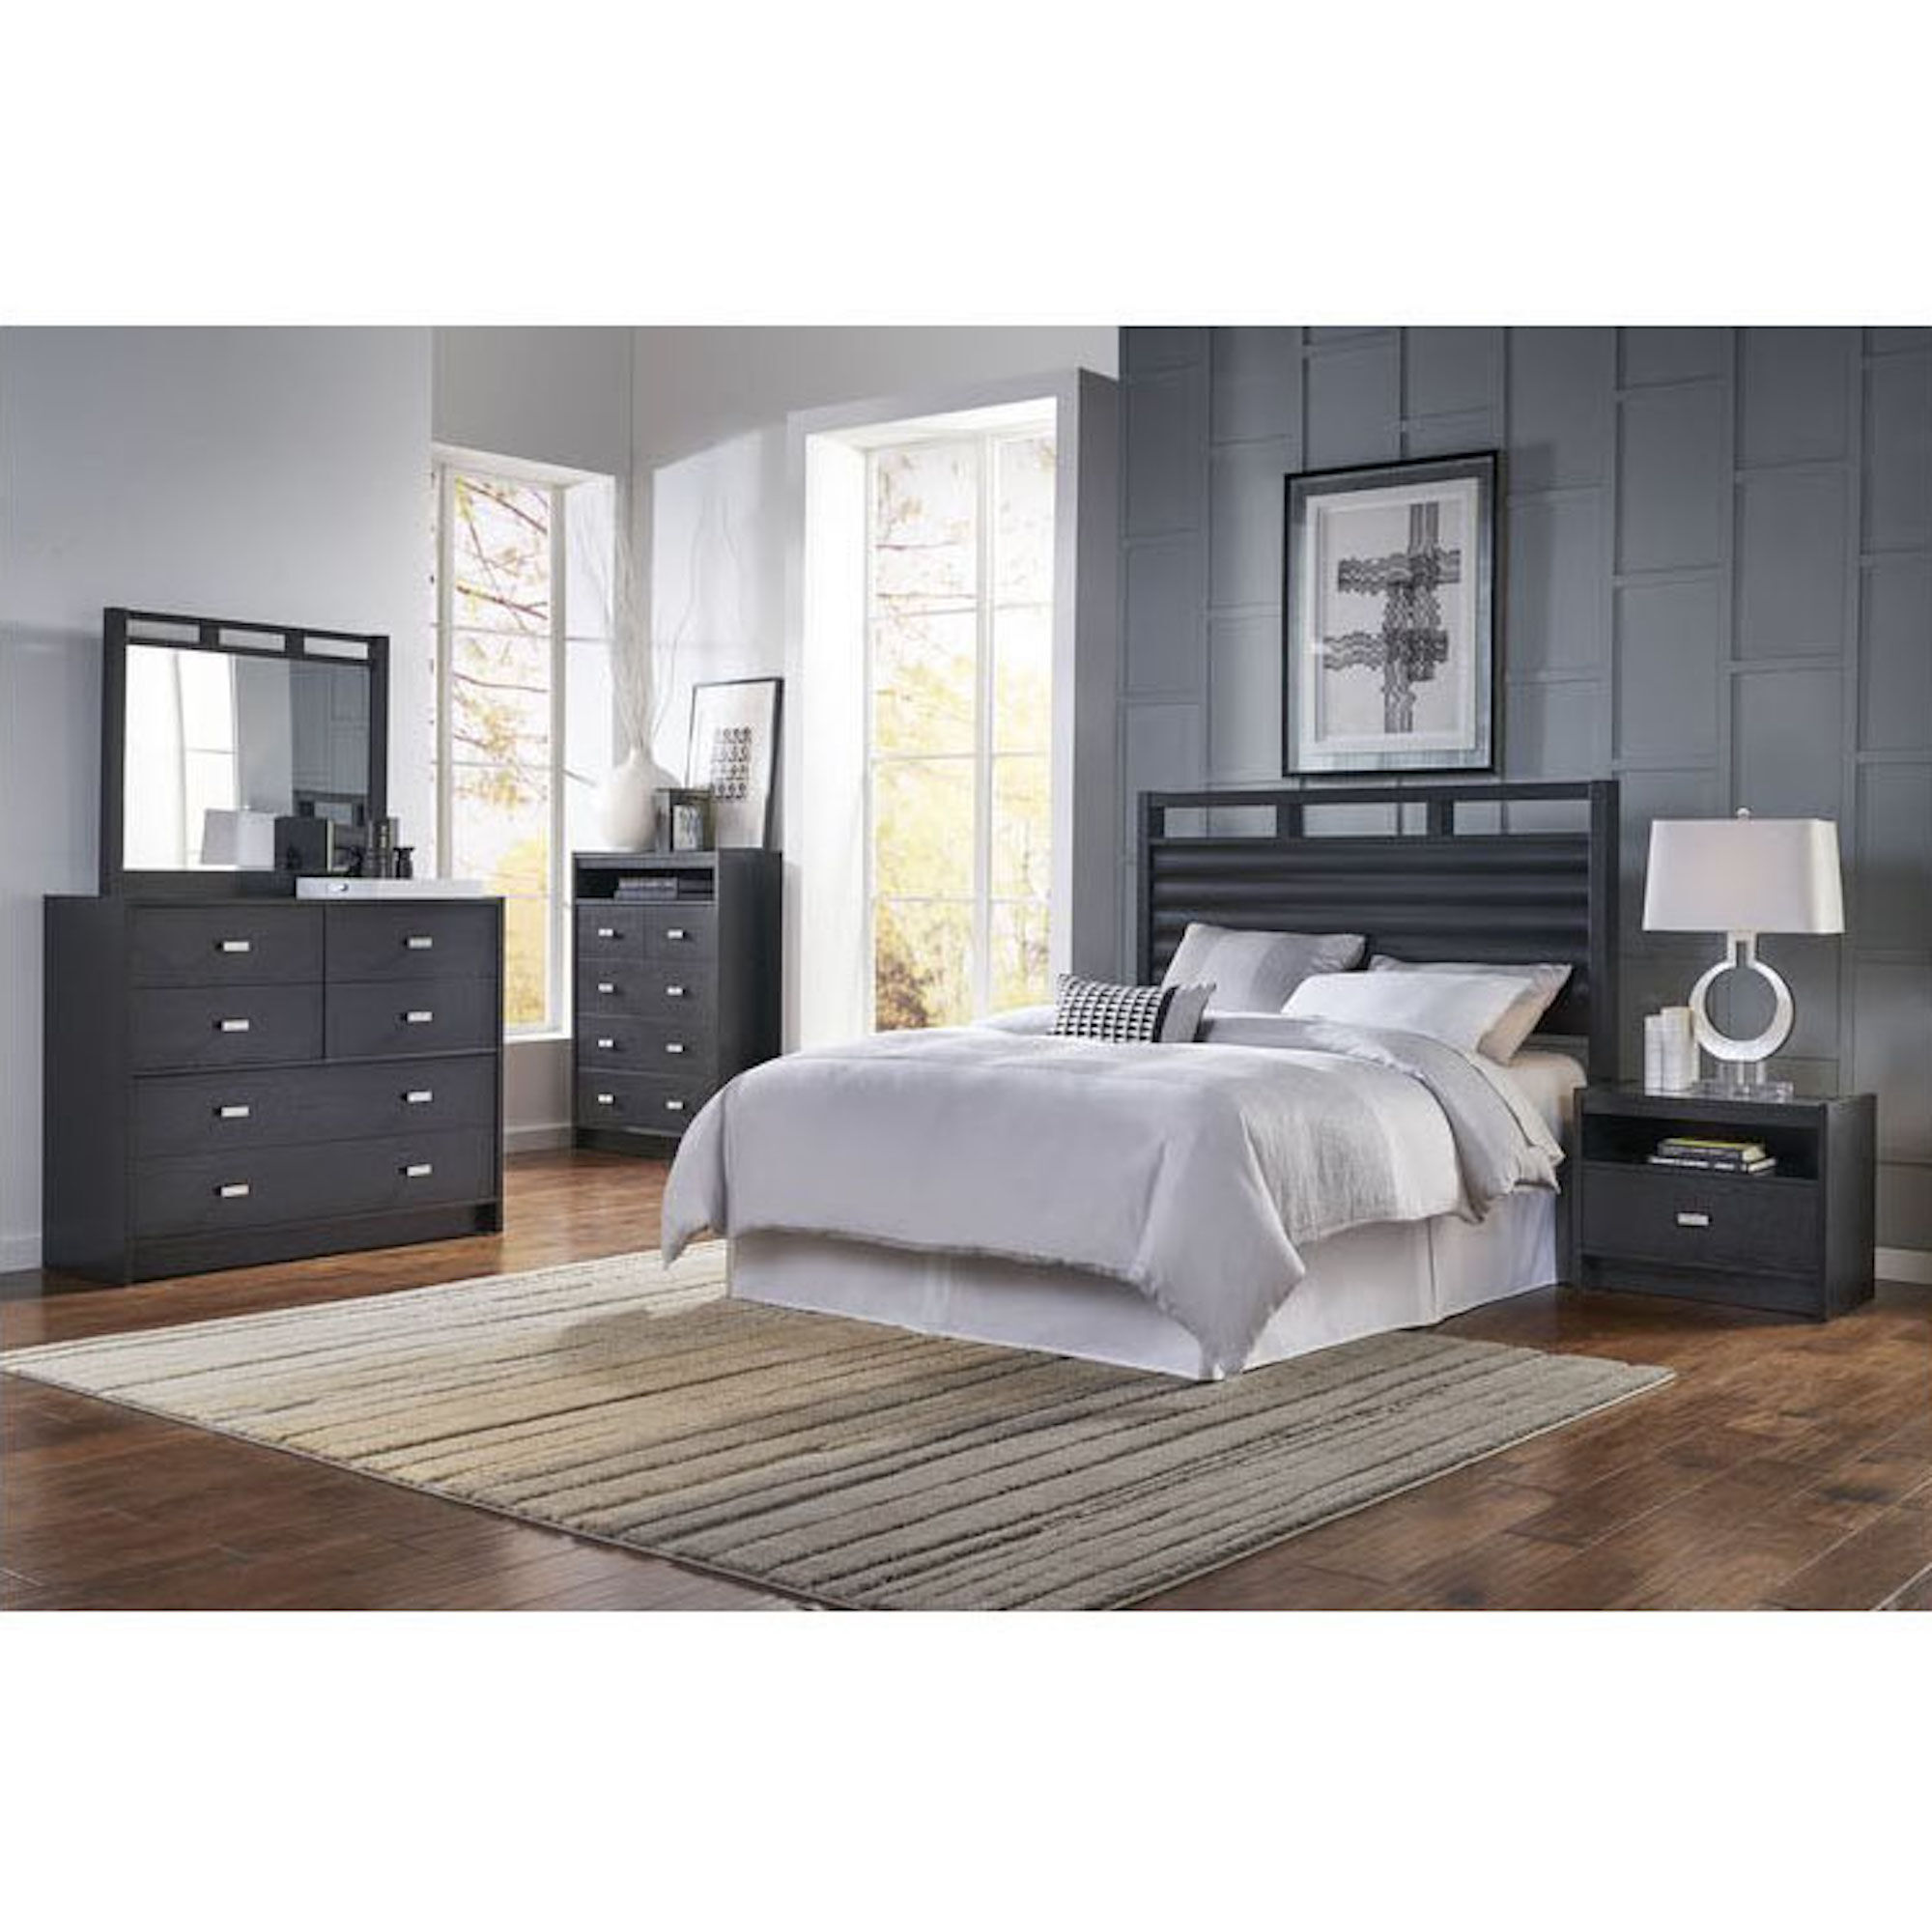 Delightful 5 Piece Soho Bedroom Collection